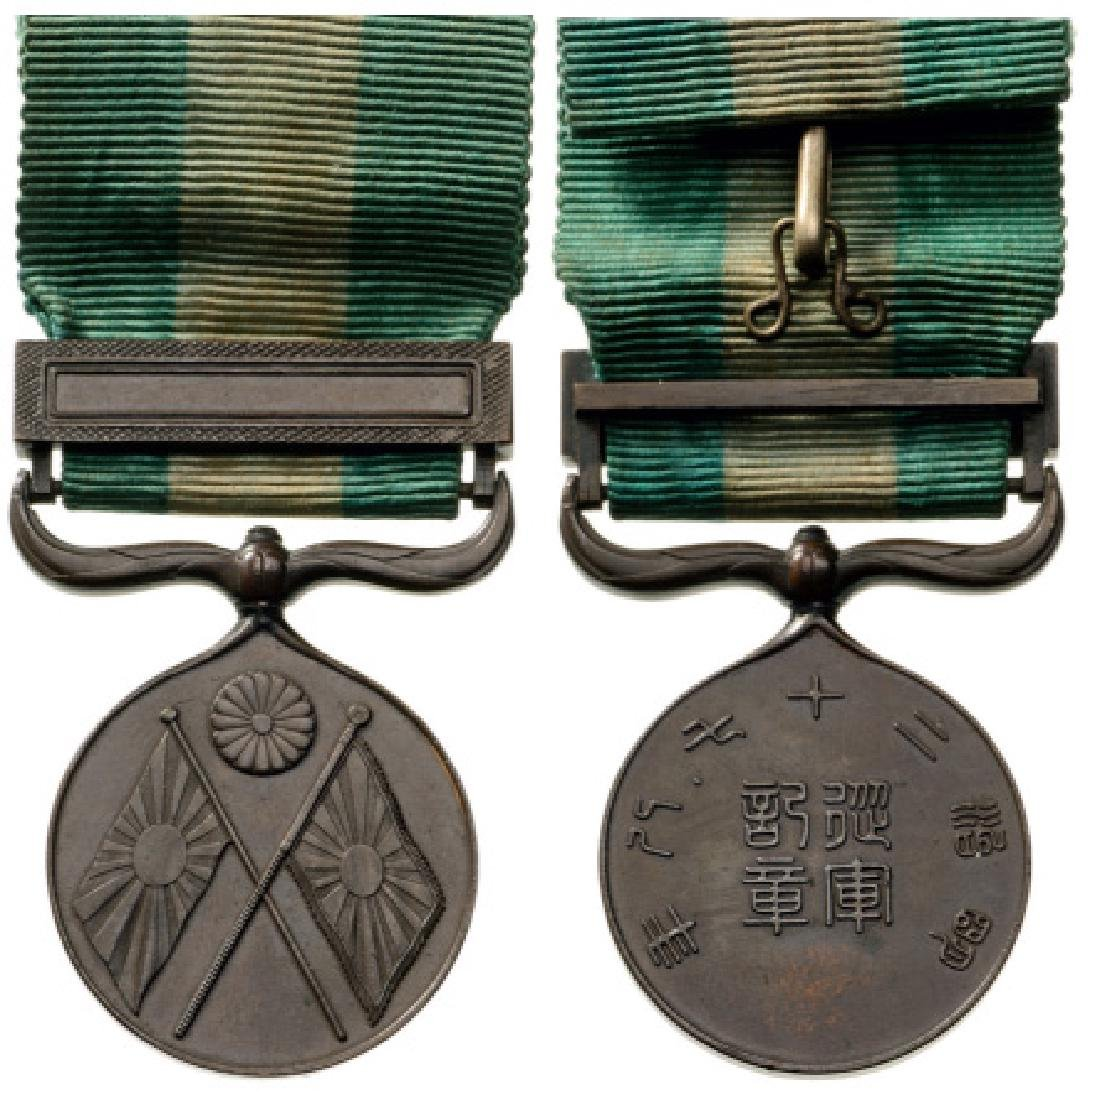 China War Medal, instituted in 1895 - 2